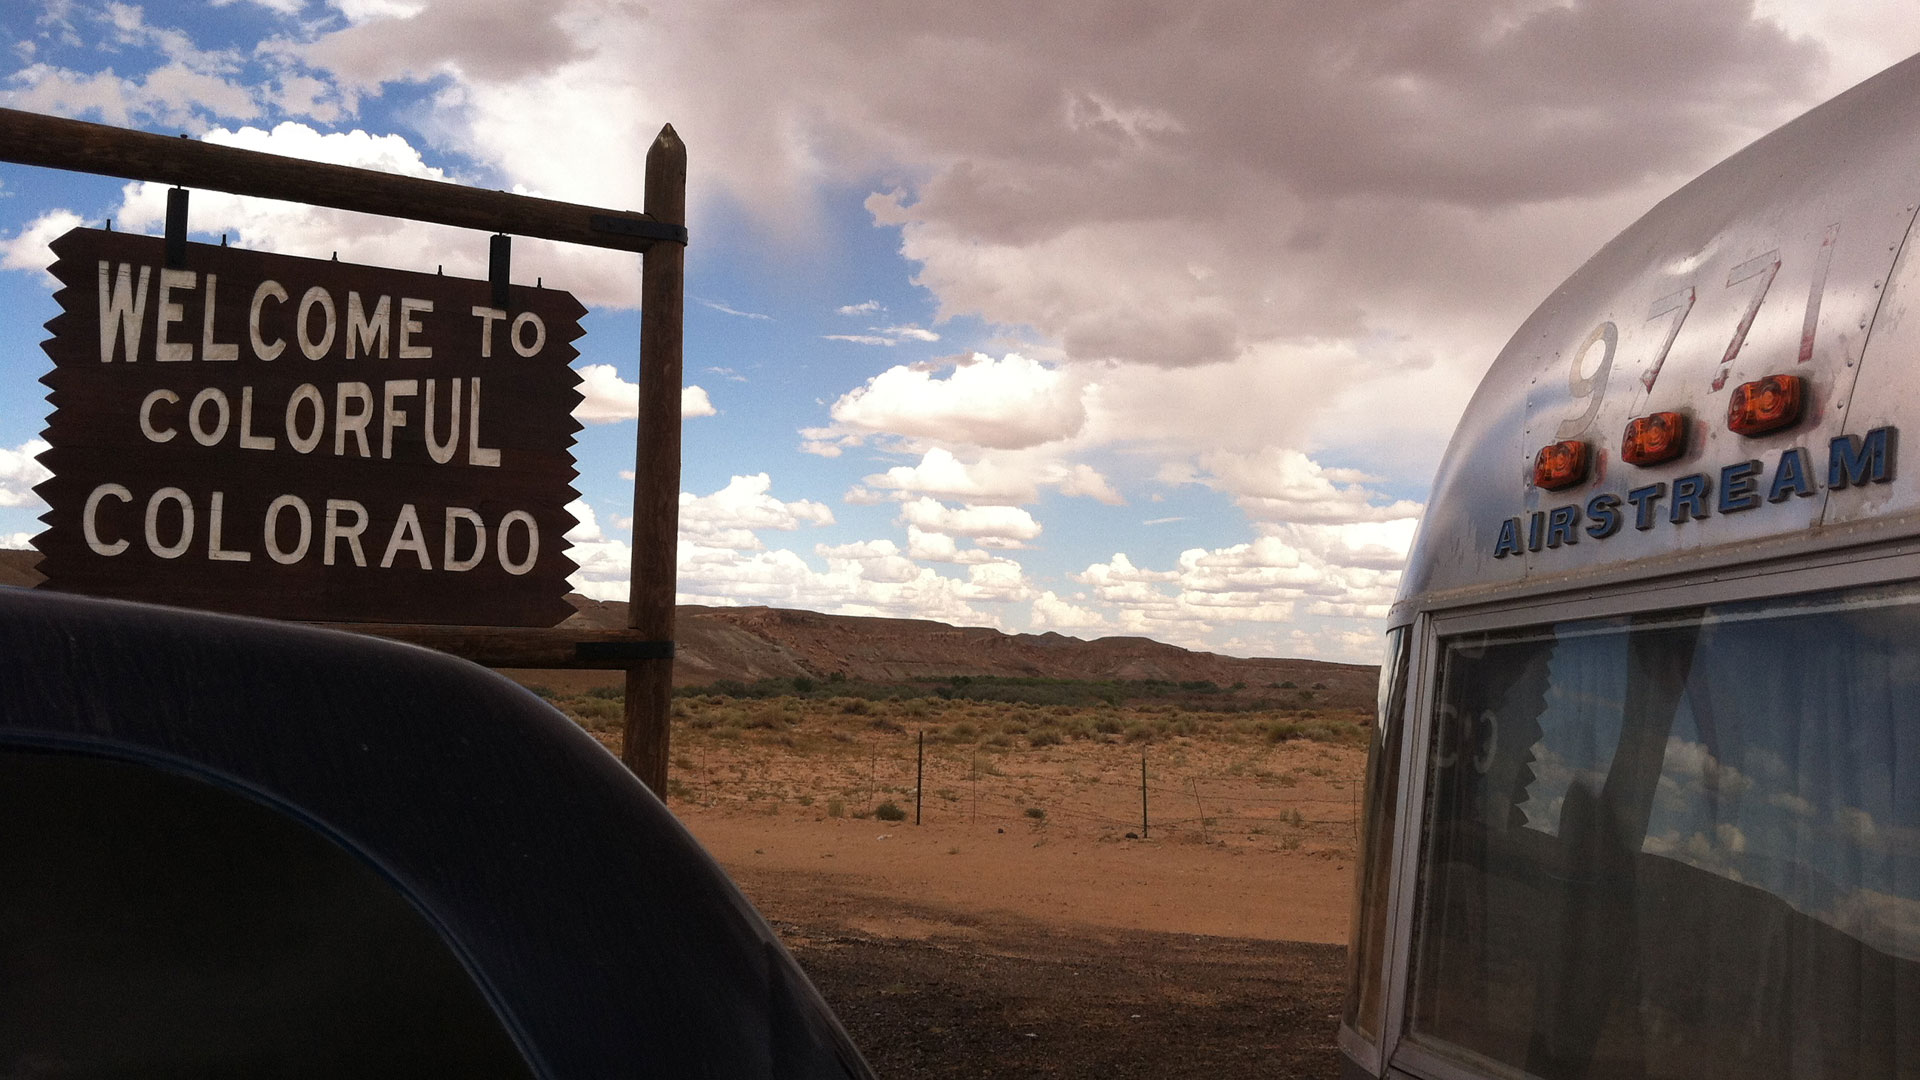 Airstream Classic Trailer sitting in front of a Welcome to Colorado sign